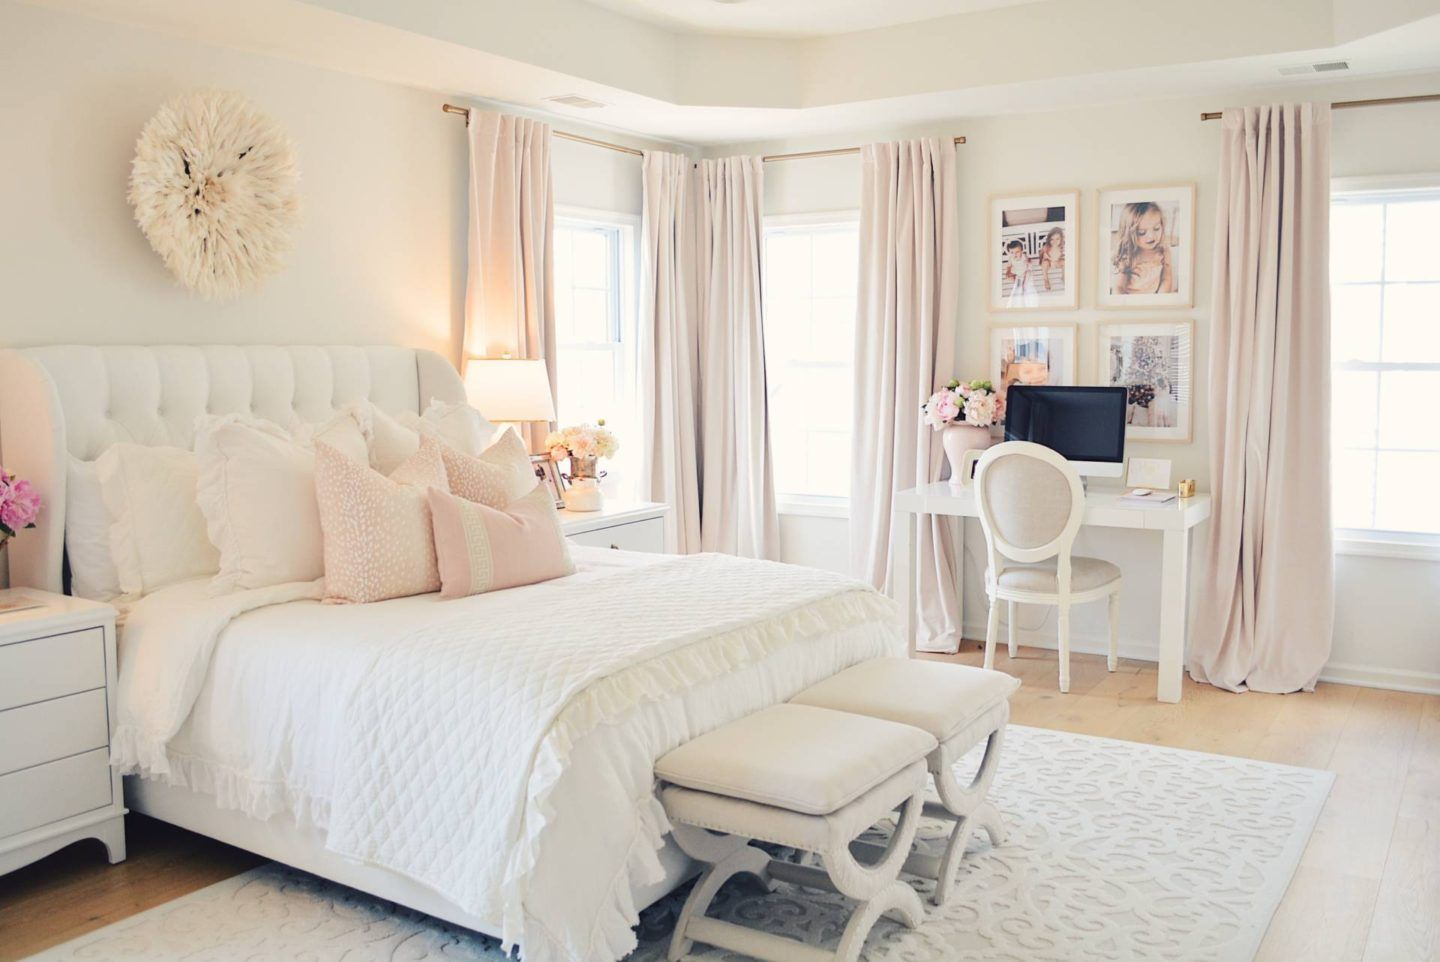 12 Ways To Arrange Pillows On A Bed Overstock Com Bed Pillow